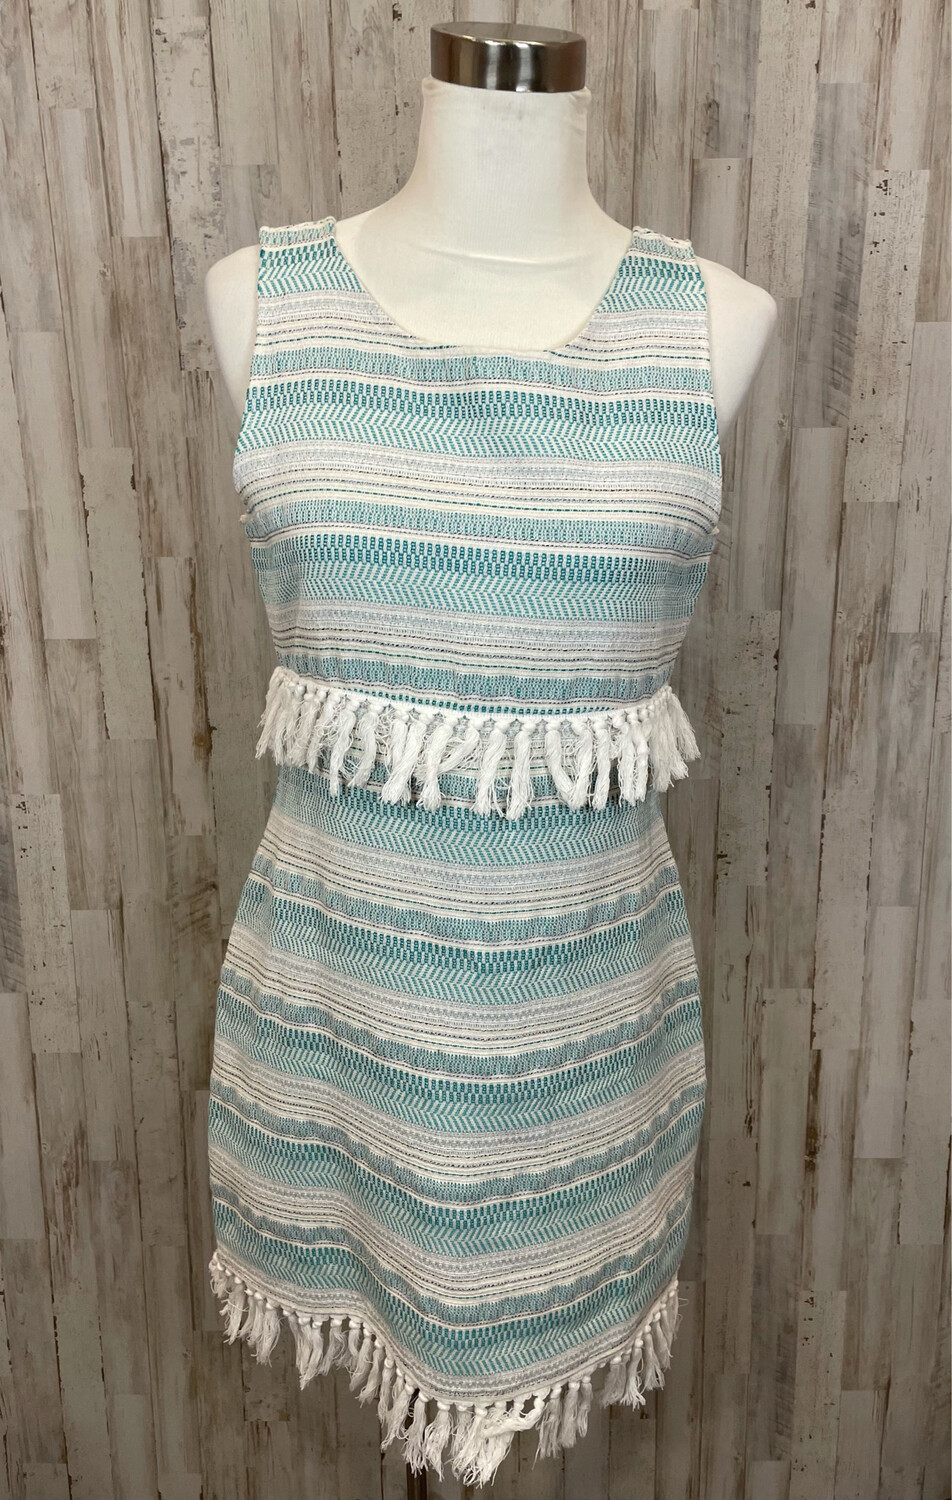 Cupcakes & Cashmere Teal & Cream Tassel Tank Dress - S